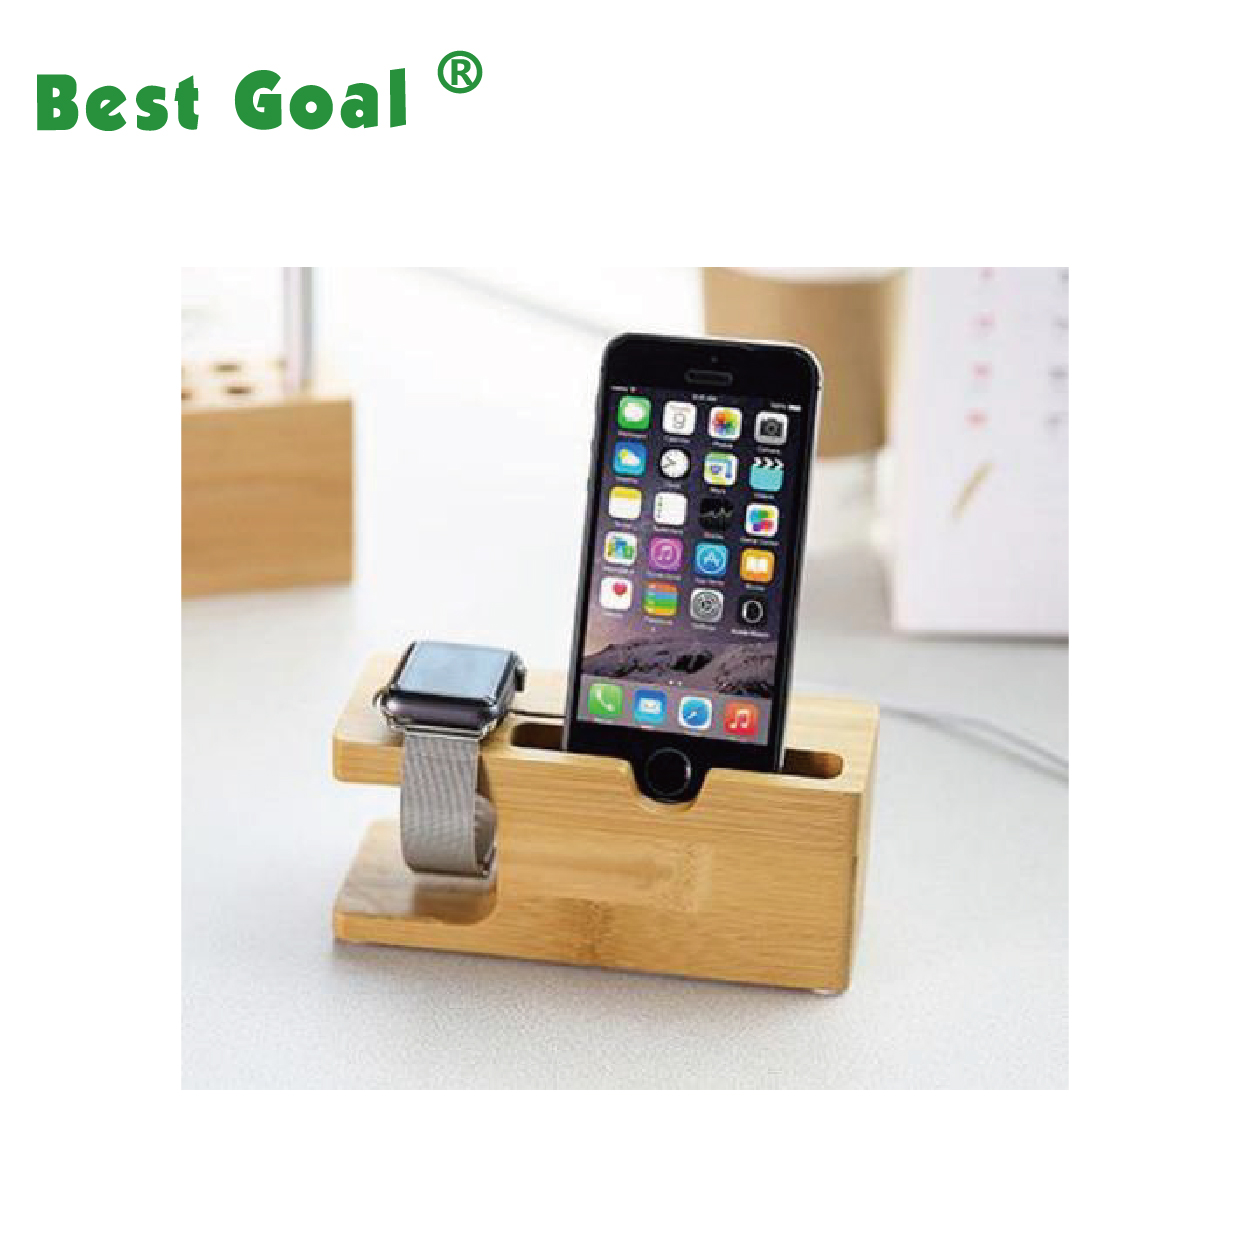 Bamboo Wooden Charging Dock Station watch cell phone stand Tablets desk organizer